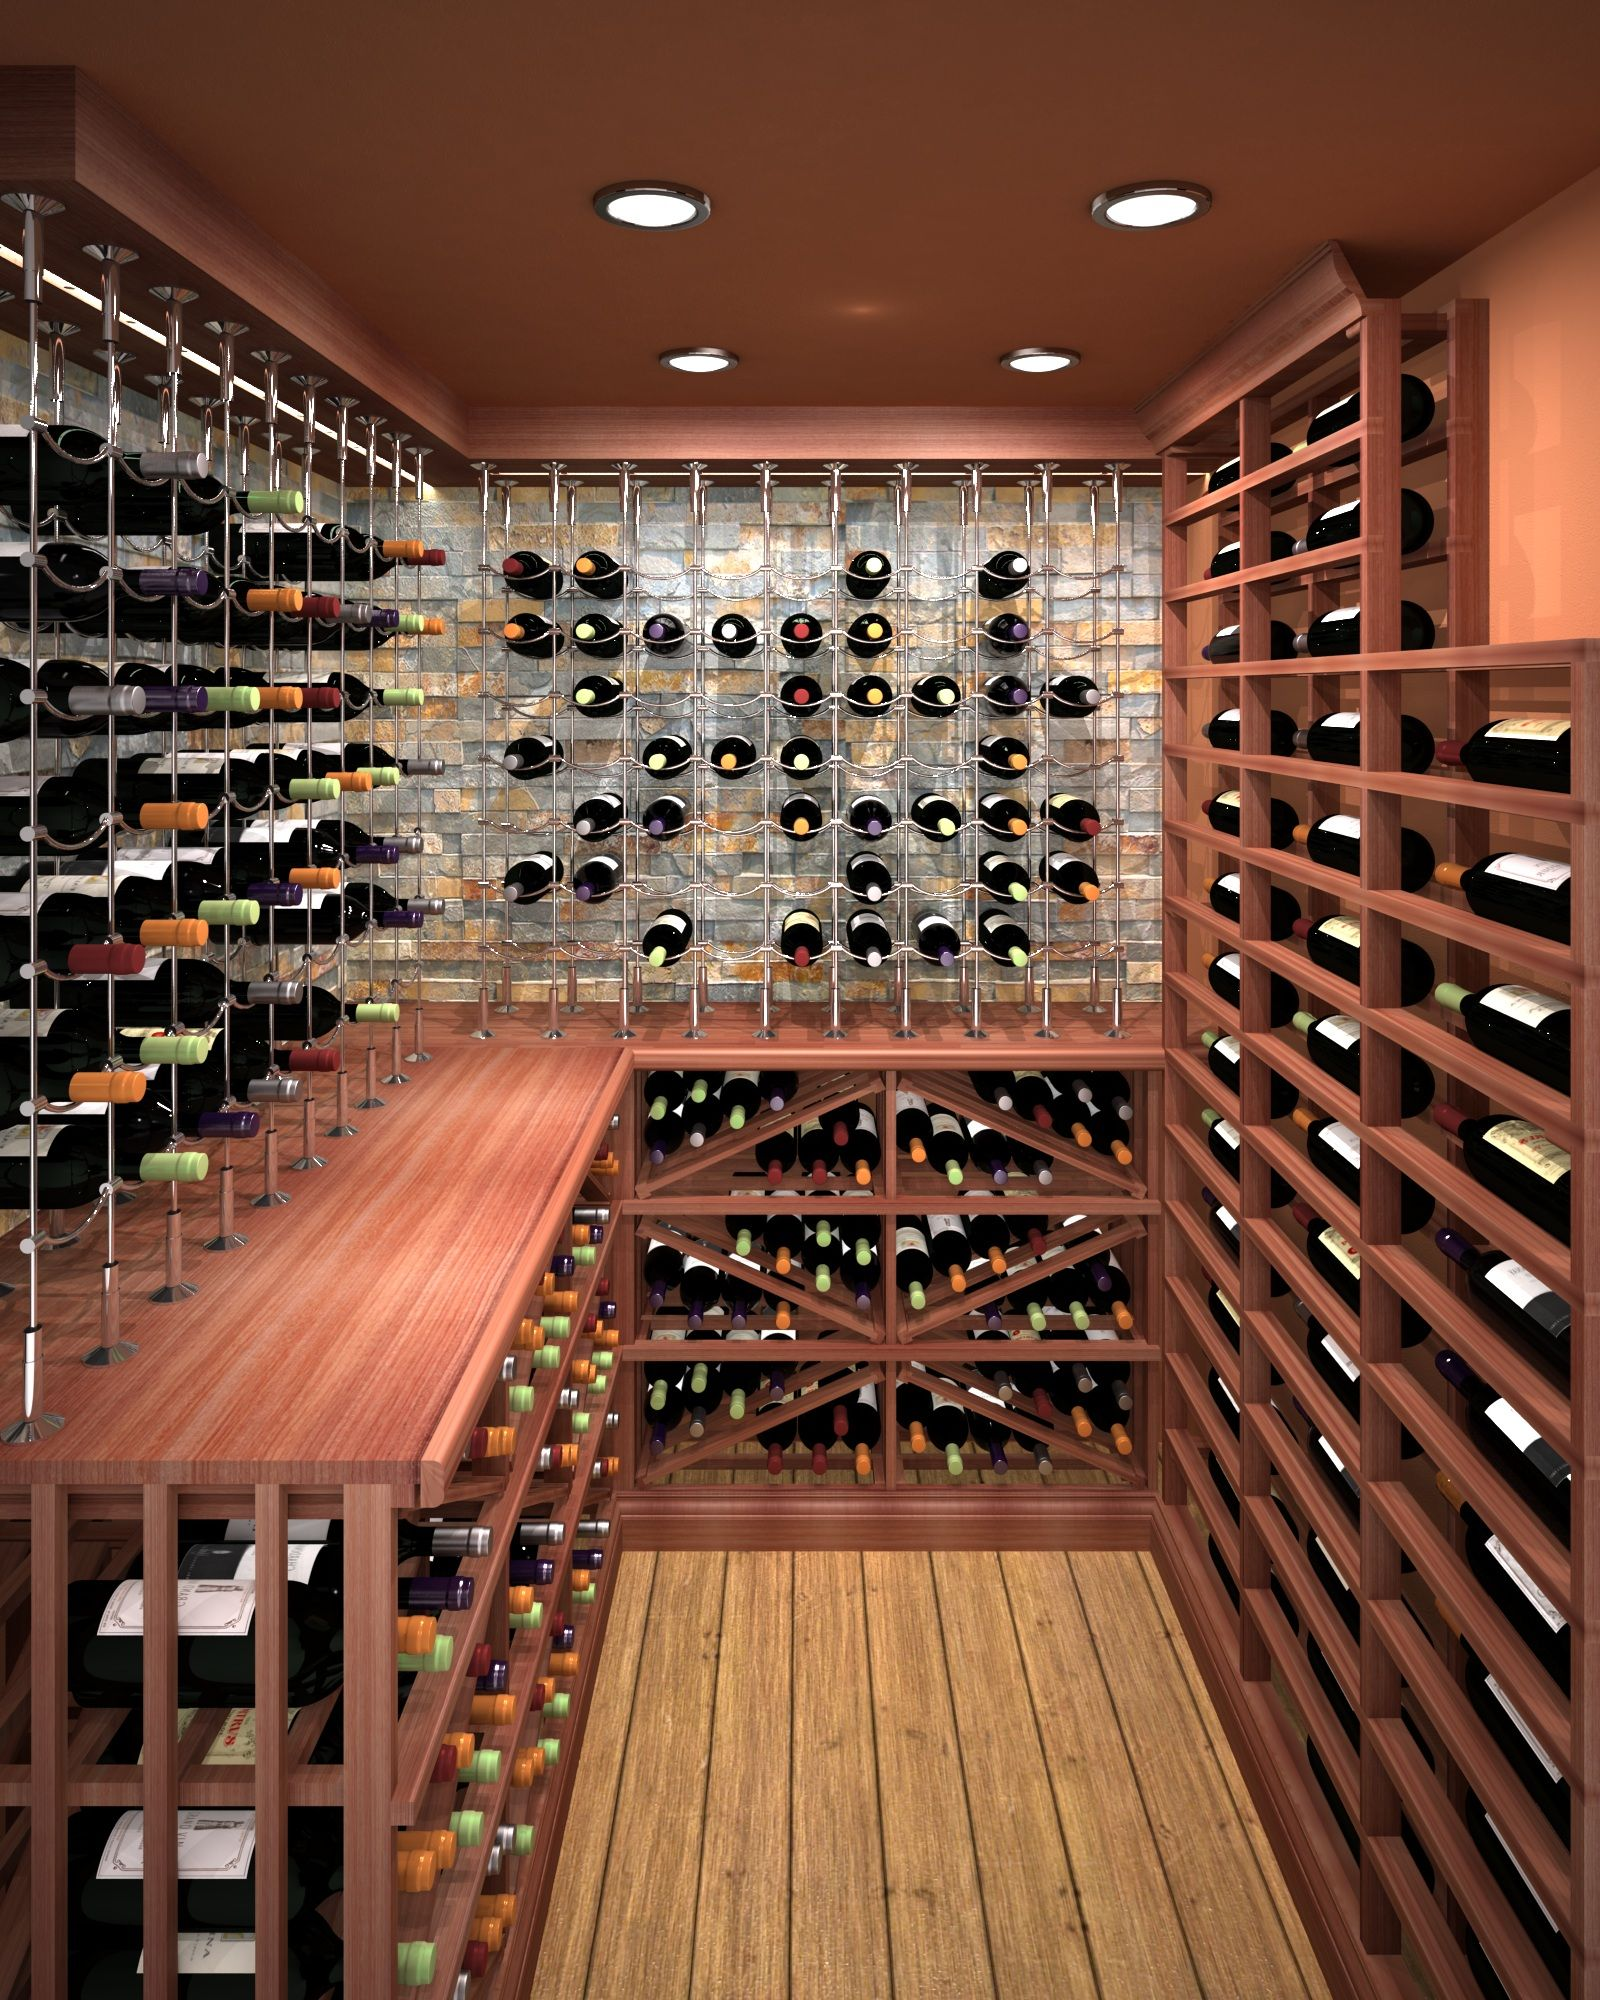 Cable Wine Racks Www Cablewineracking Com Wine Cellar Room With Glass Doors Wine Cellar With Cable Wine Racks Barrel Woo Wine Display Wine Cellar Stone Wall